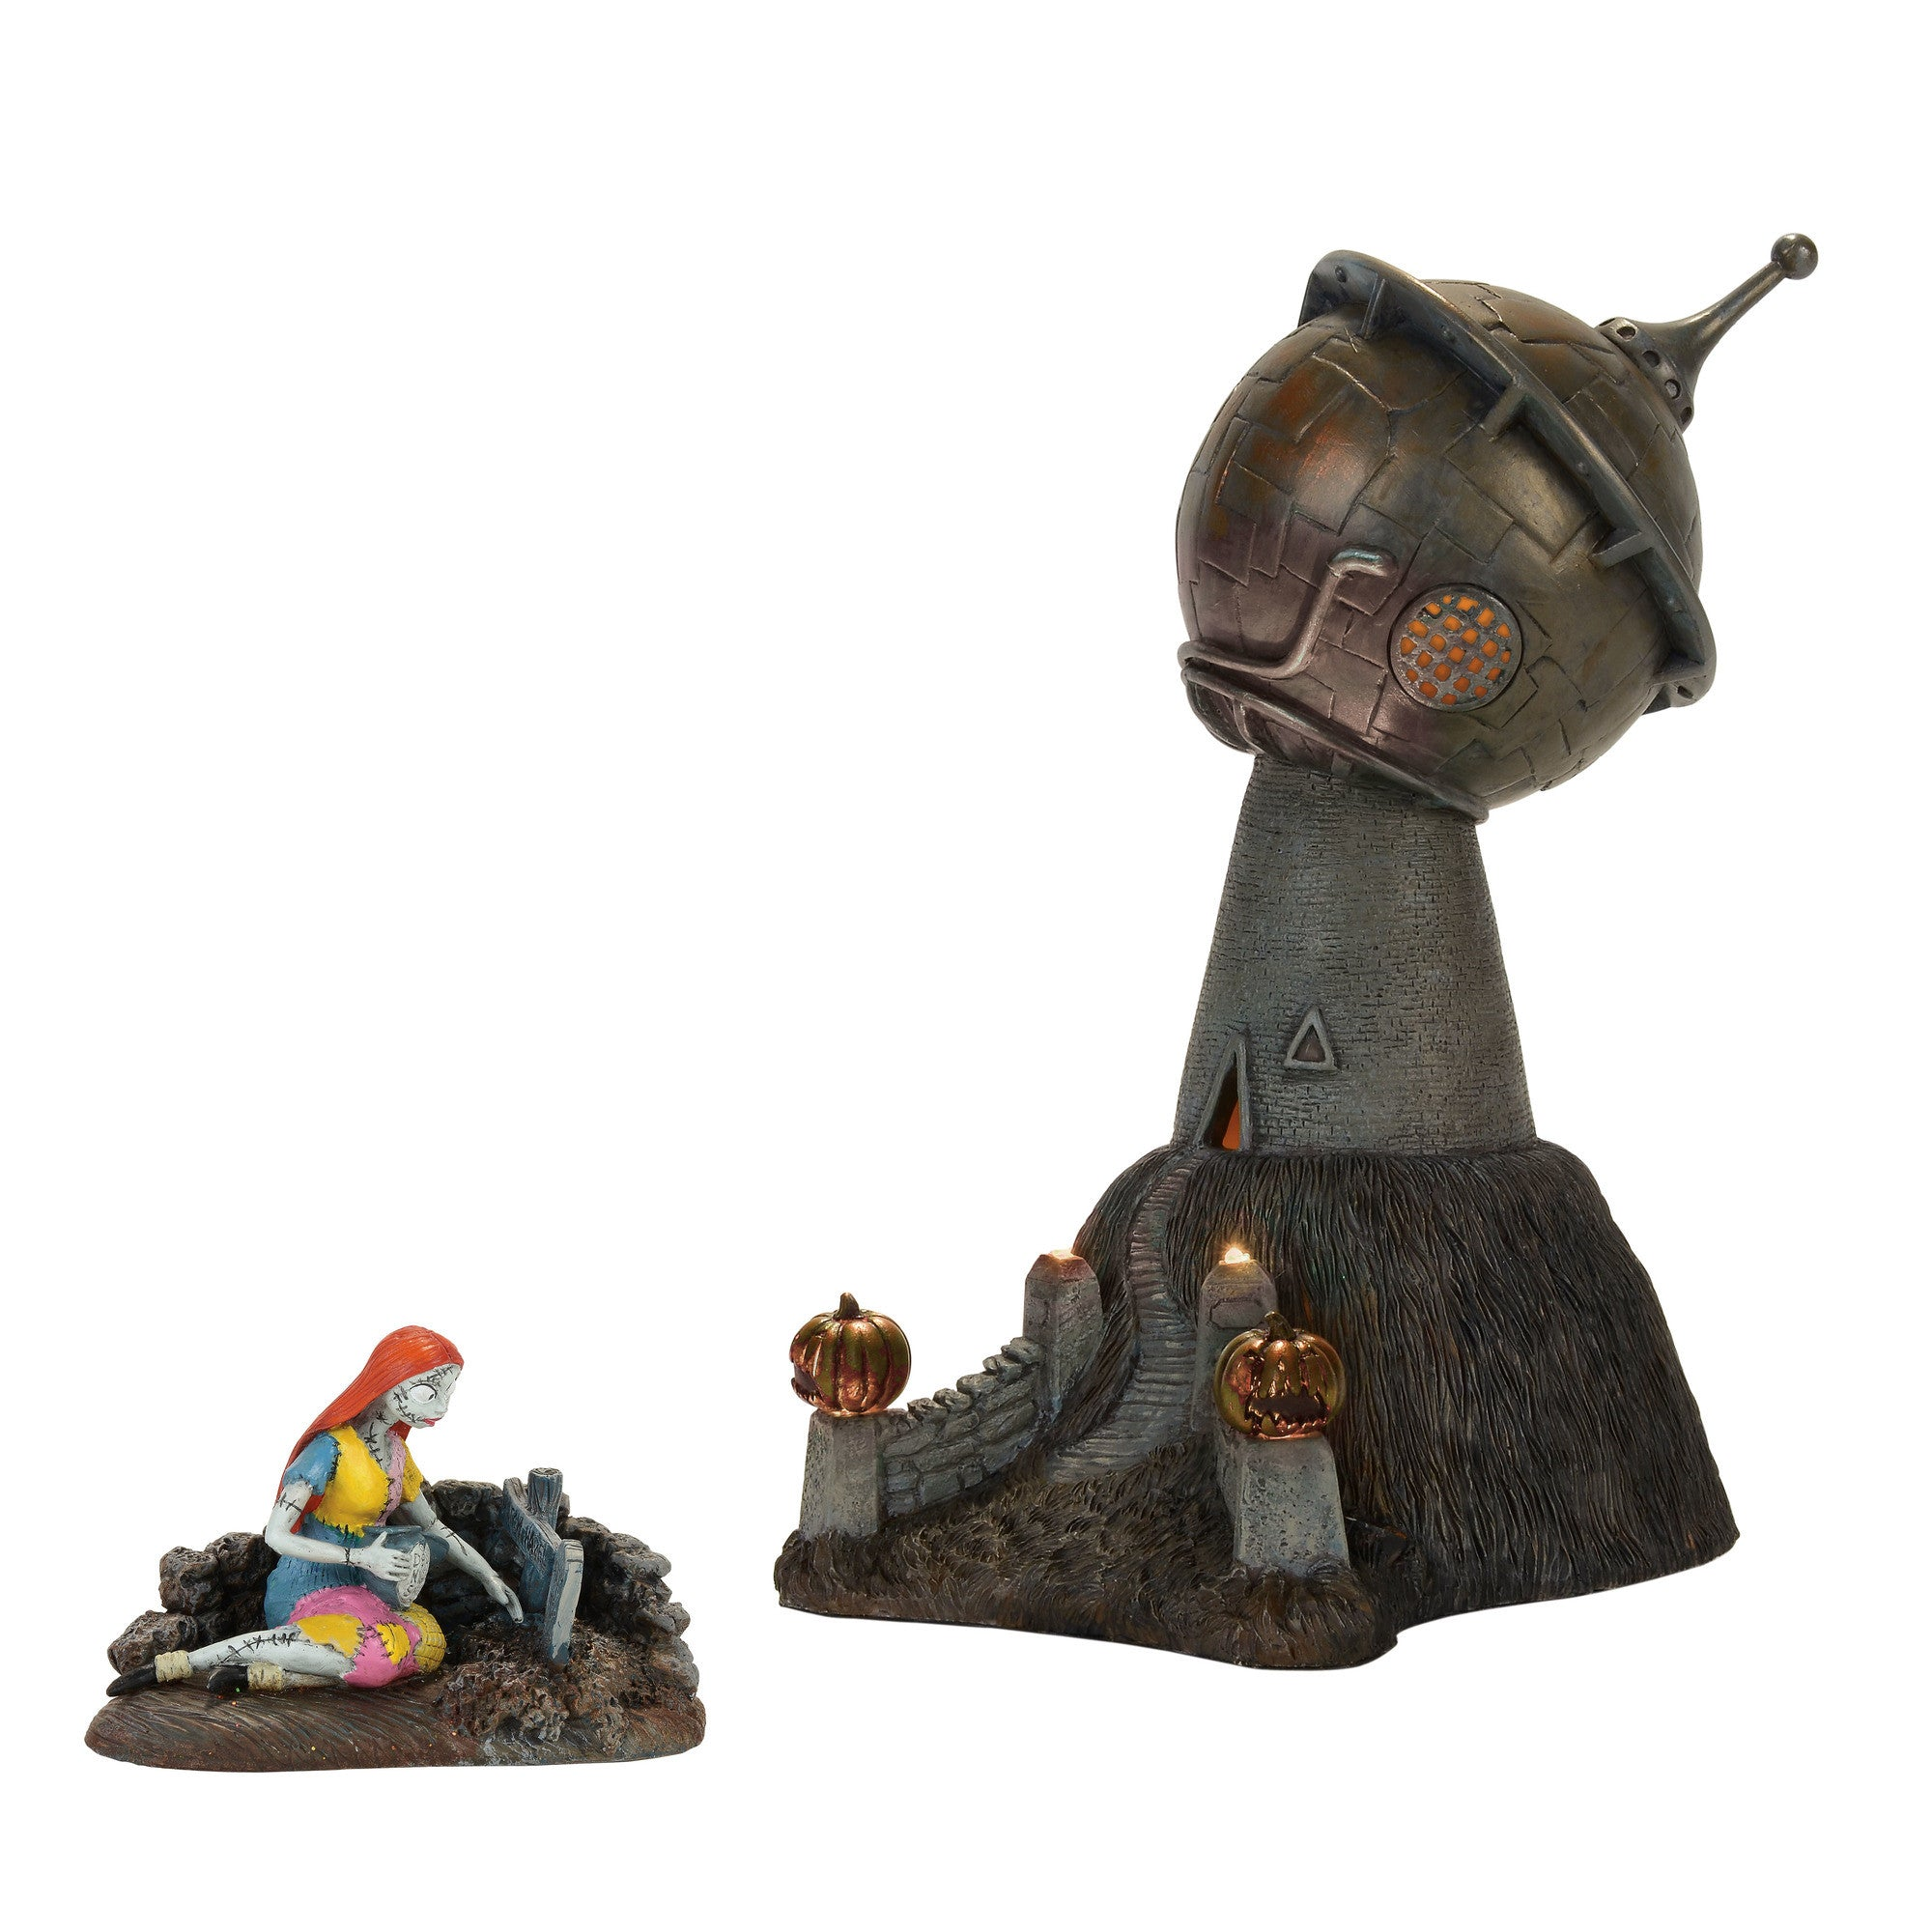 Dr. Finkelstein's Observatory & Sally Figure Set - Nightmare Before Christmas Village